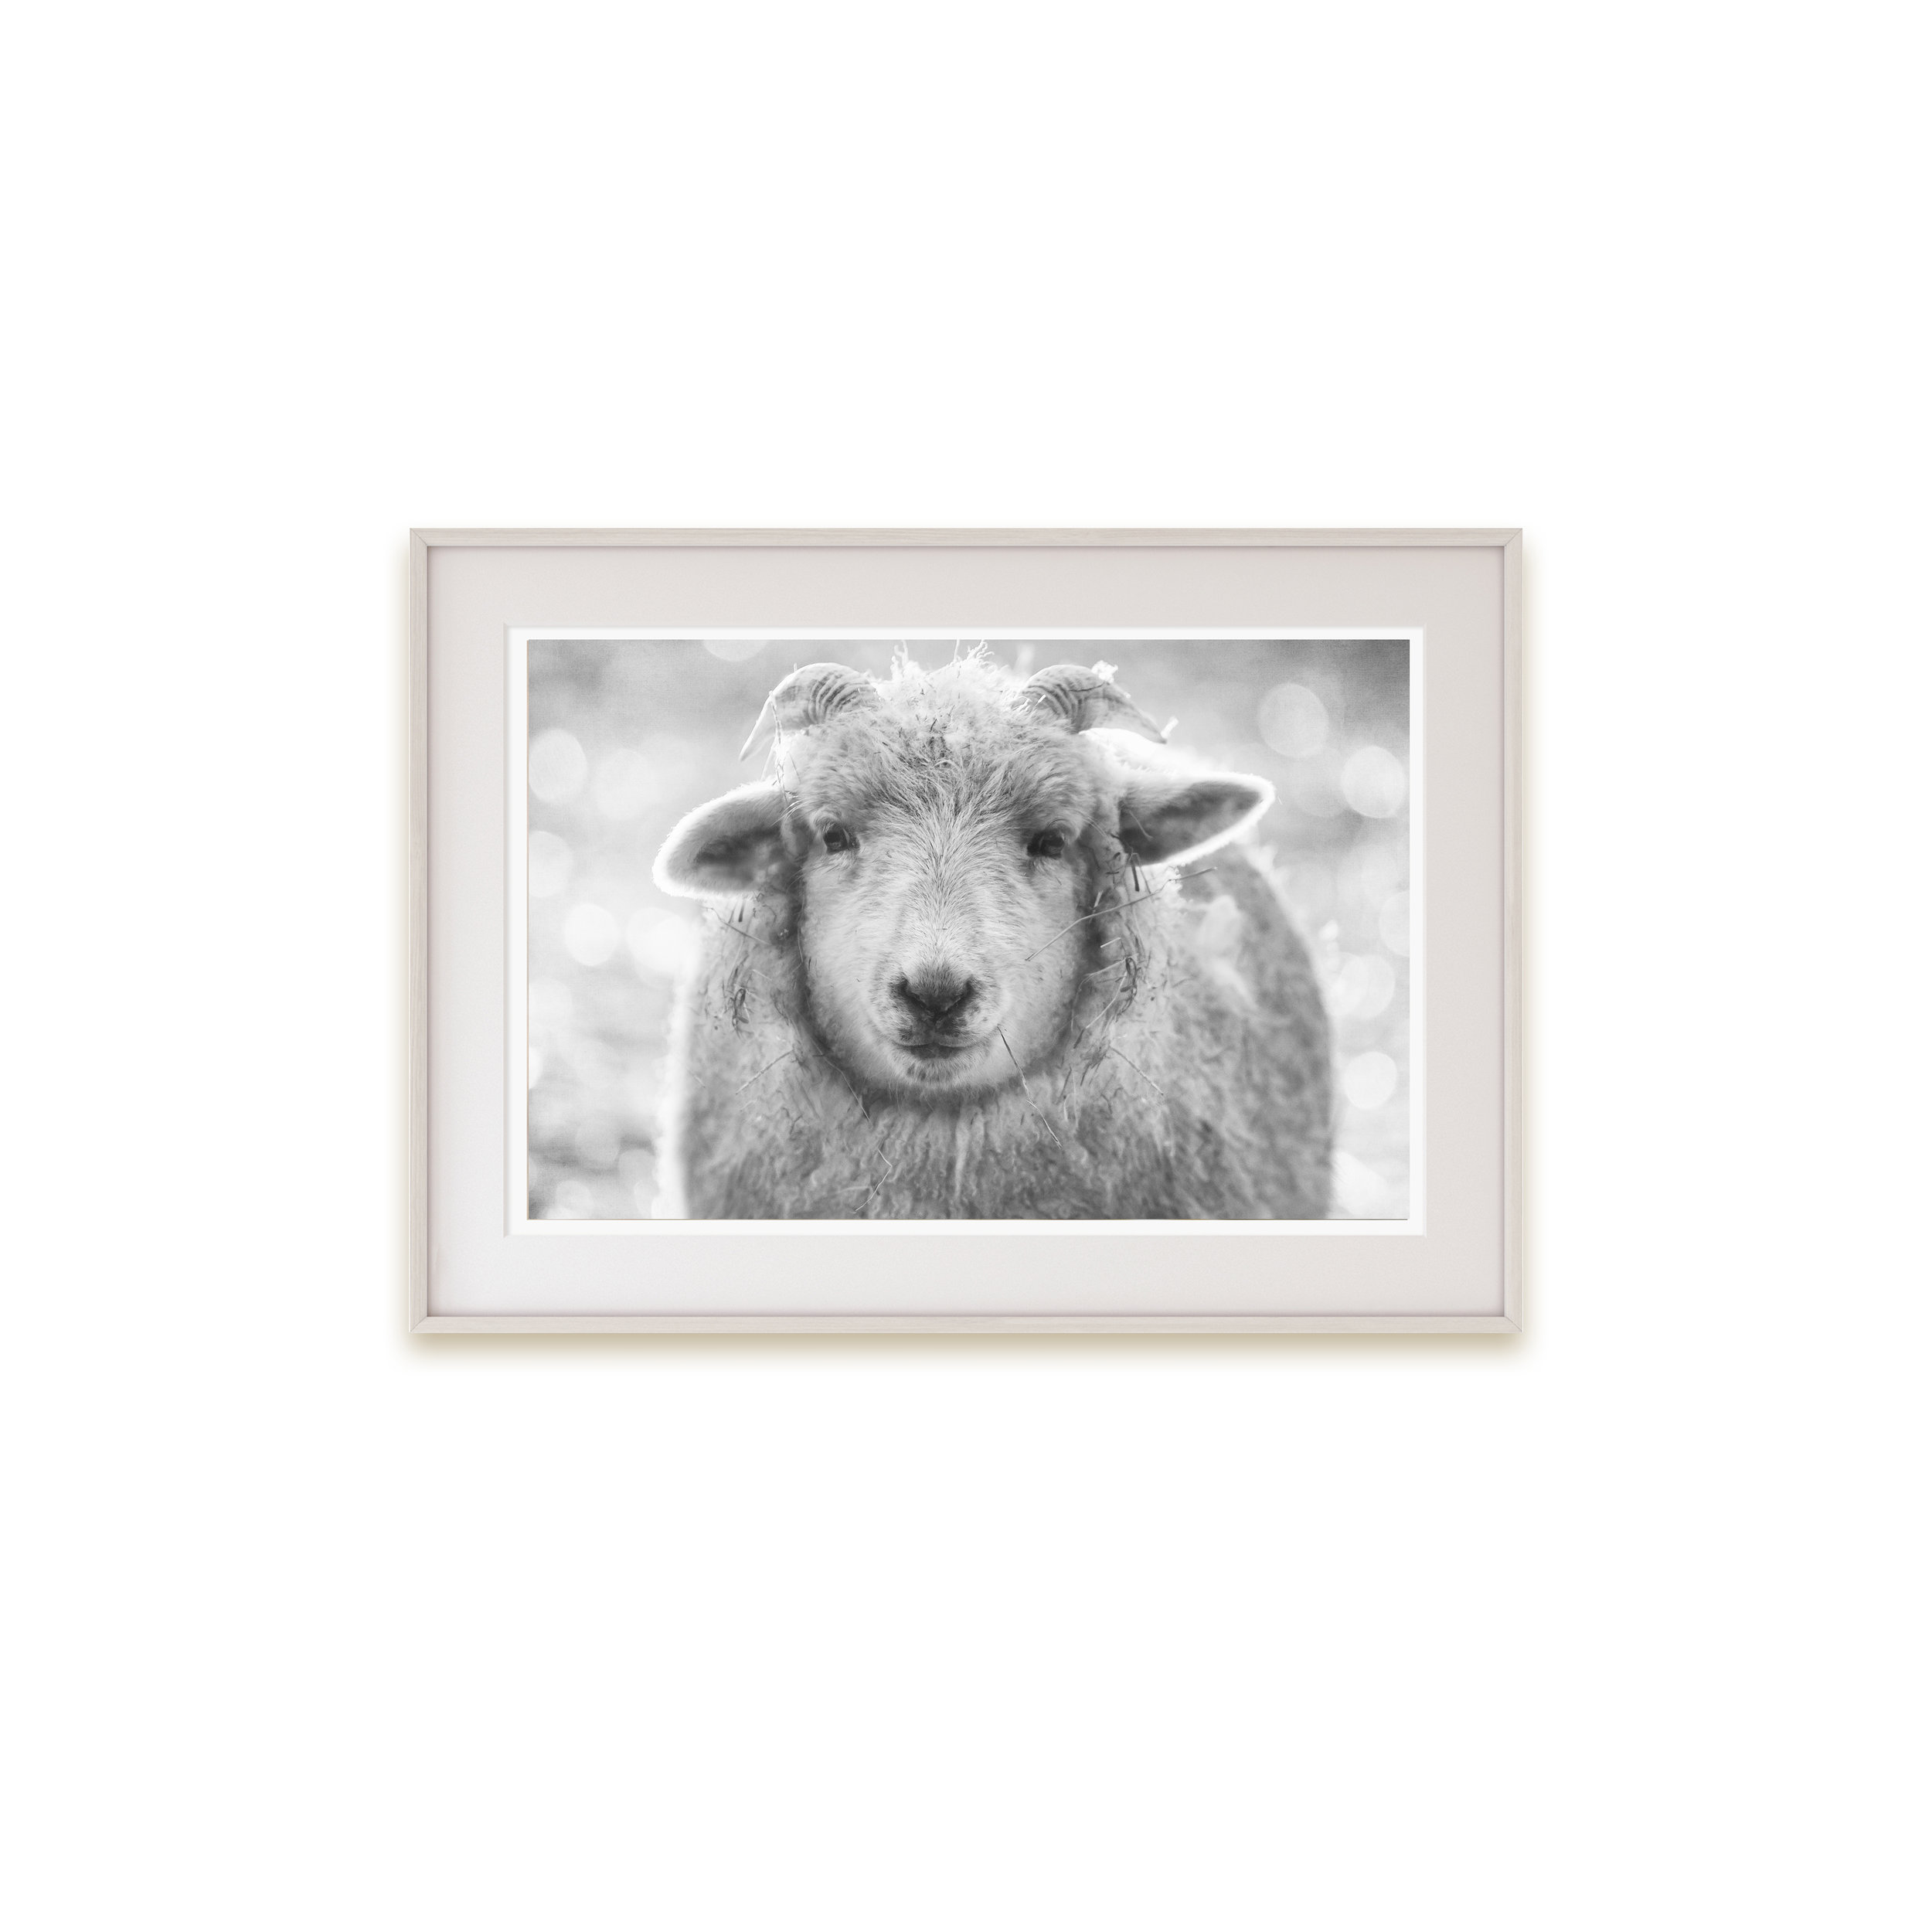 A happy sheep print (who doesn't love a sheep print?!)